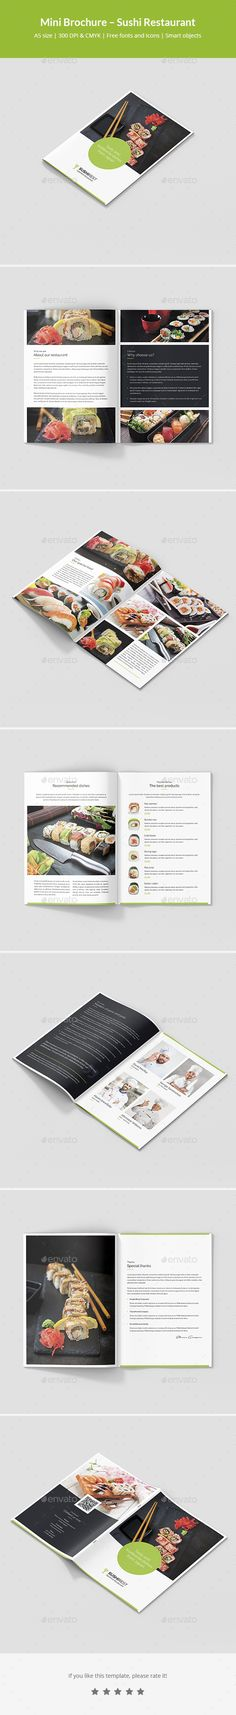 Mini Brochure – Sushi Restaurant A5 #chinese food #futomaki • Download ➝ https://graphicriver.net/item/mini-brochure-sushi-restaurant-a5/21261999?ref=pxcr